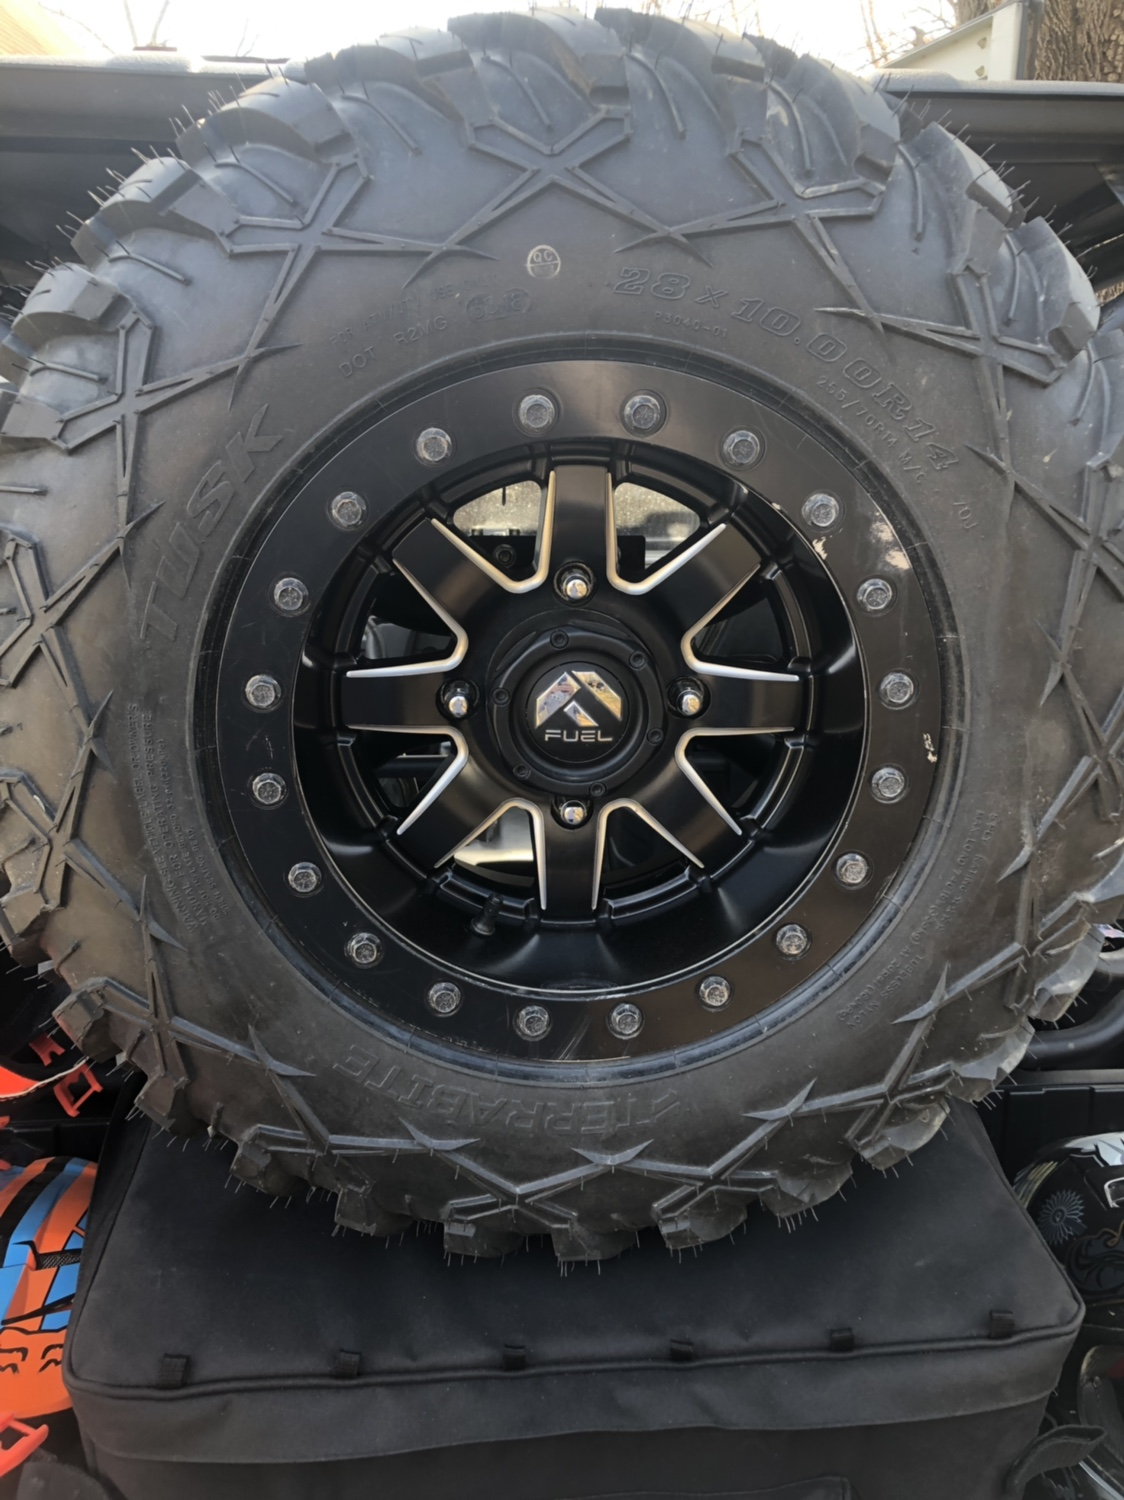 Aftermarket wheels and tires for Teryx.-img_2728.jpg